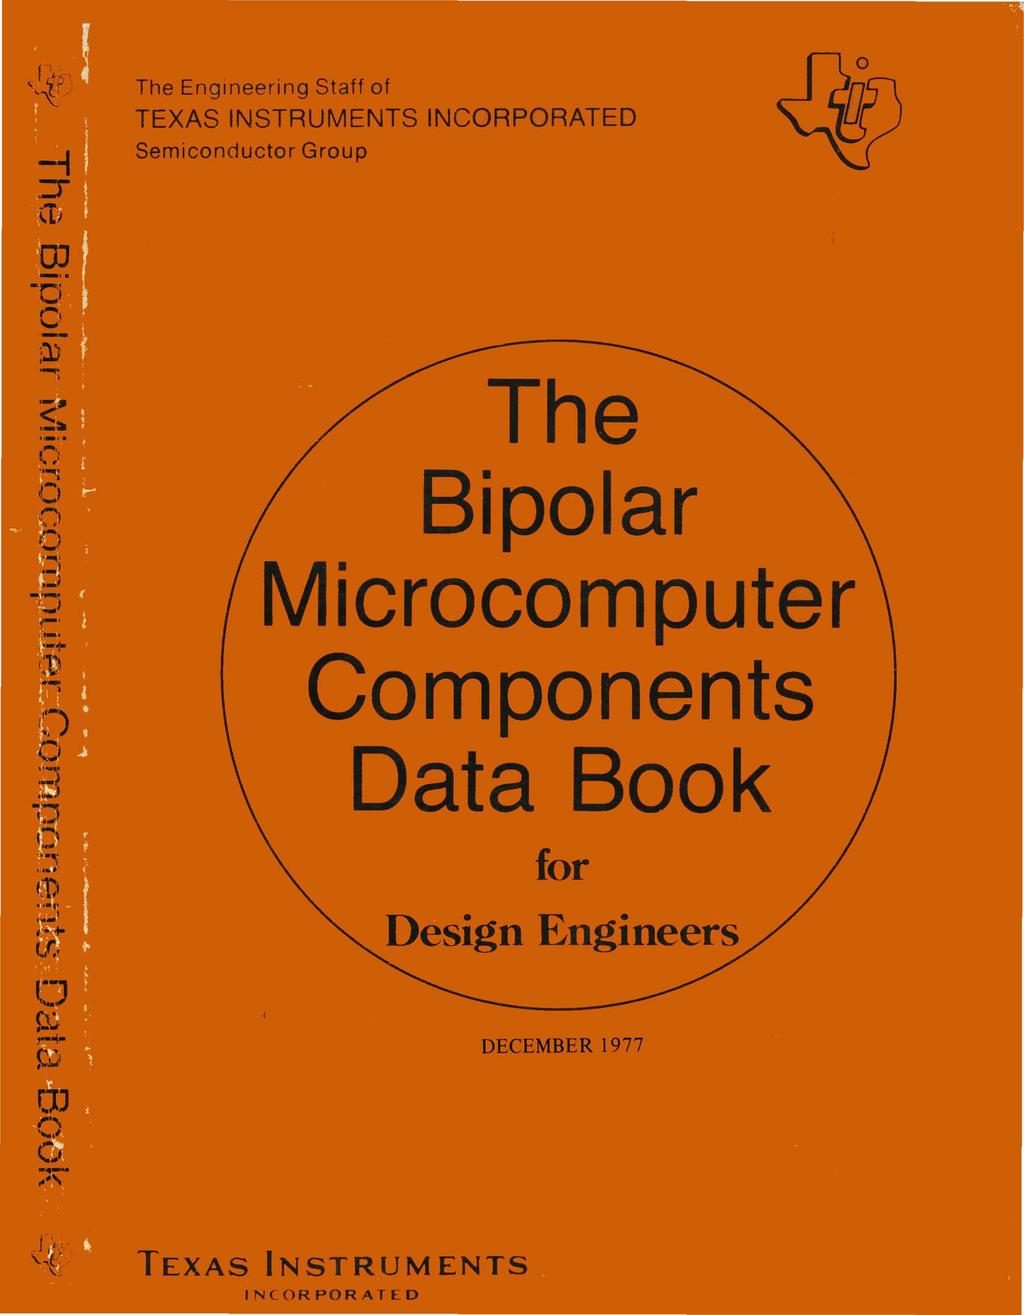 Bipolar Microcomputer Components Data Book Pdf 62 Adder Block Diagram The Abbreviation Fa Stands For Fulladder Engineering Staff Of Texas Nstruments Ncorporated Semiconductor Group 11